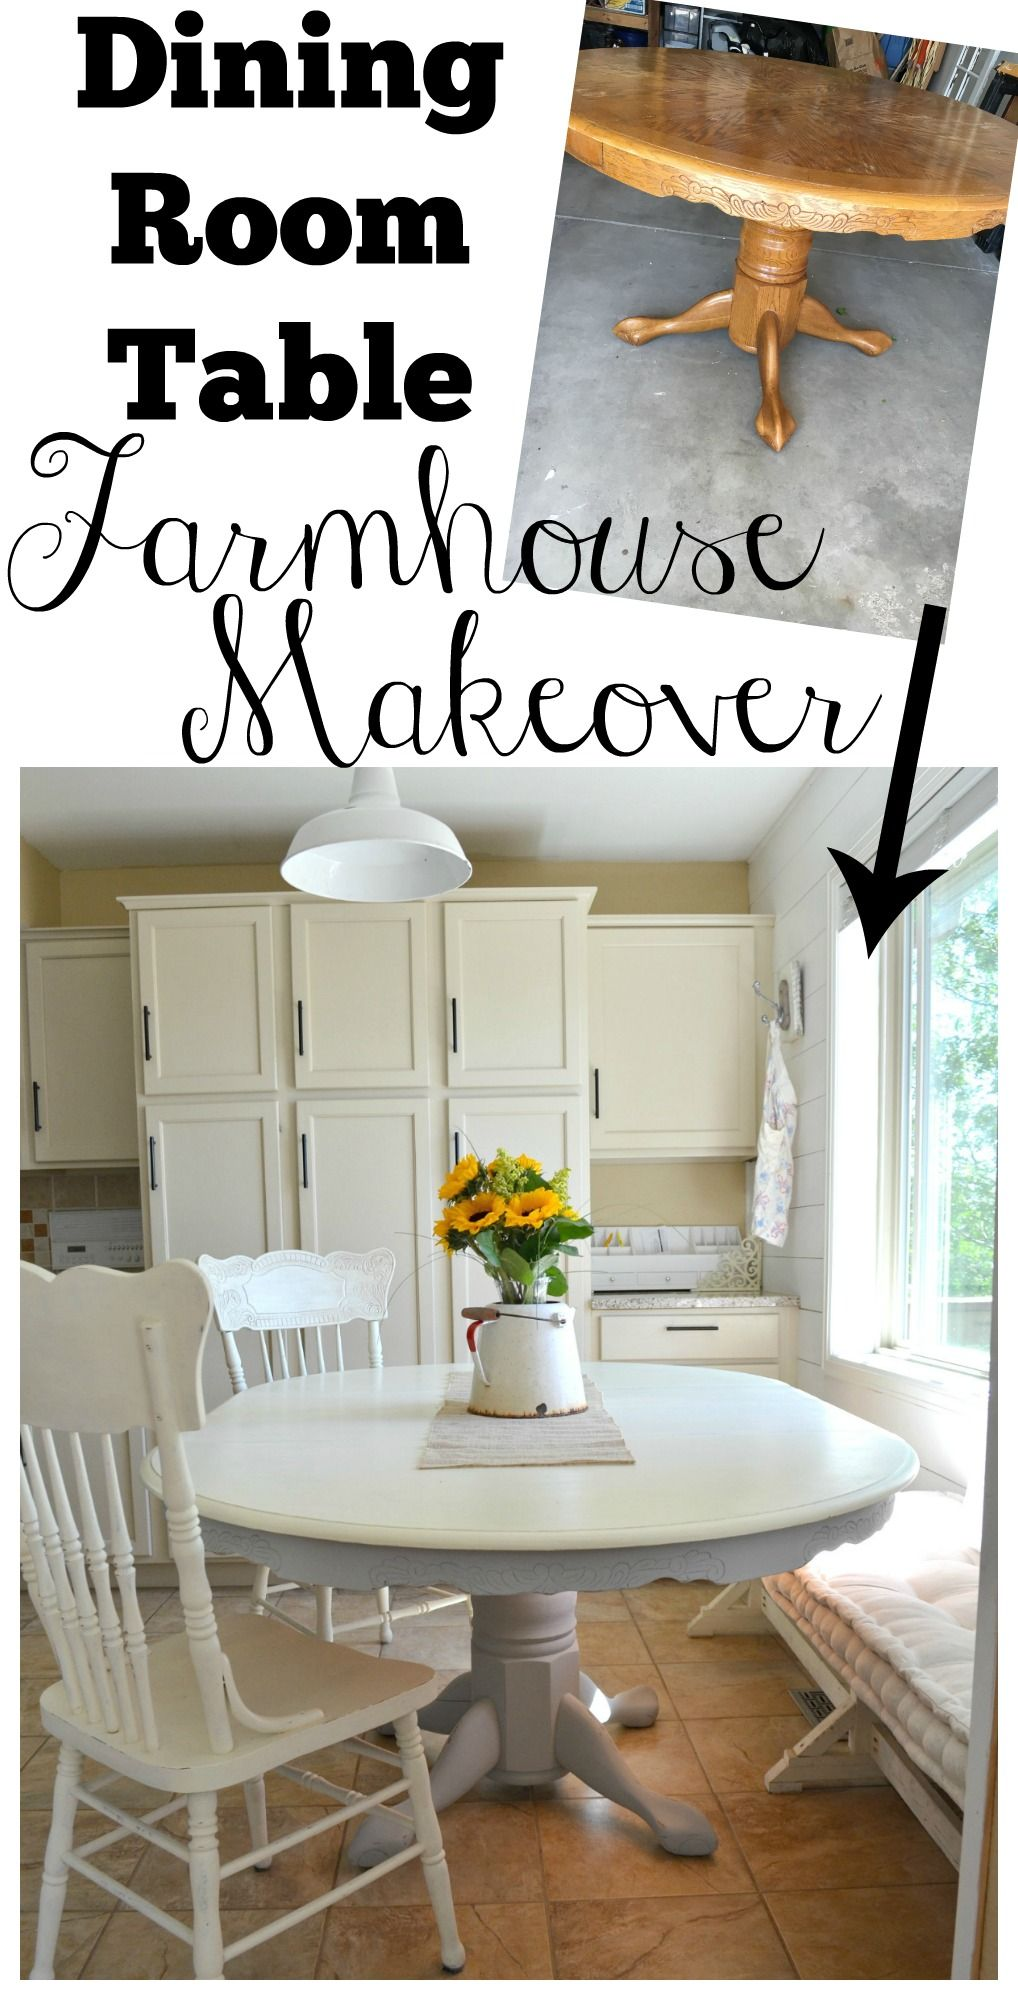 Chalk Paint Dining Table Makeover Dining Room Table Makeover Dining Table Makeover Chalk Paint Dining Table